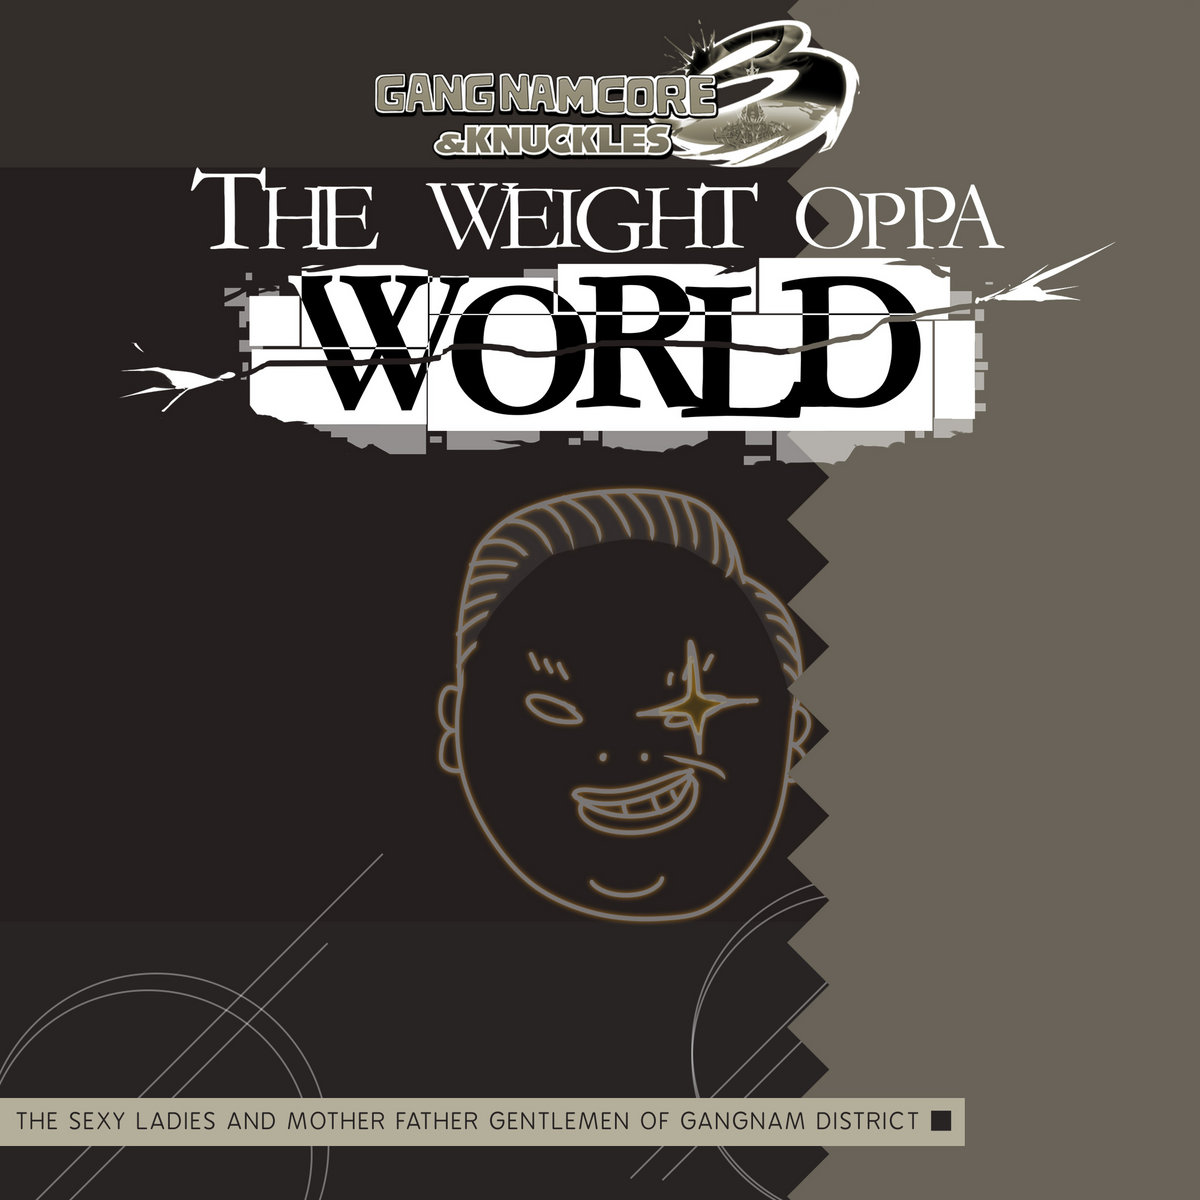 GANGNAMCORE 3 & Knuckles: The Weight Oppa World | Triple-Q